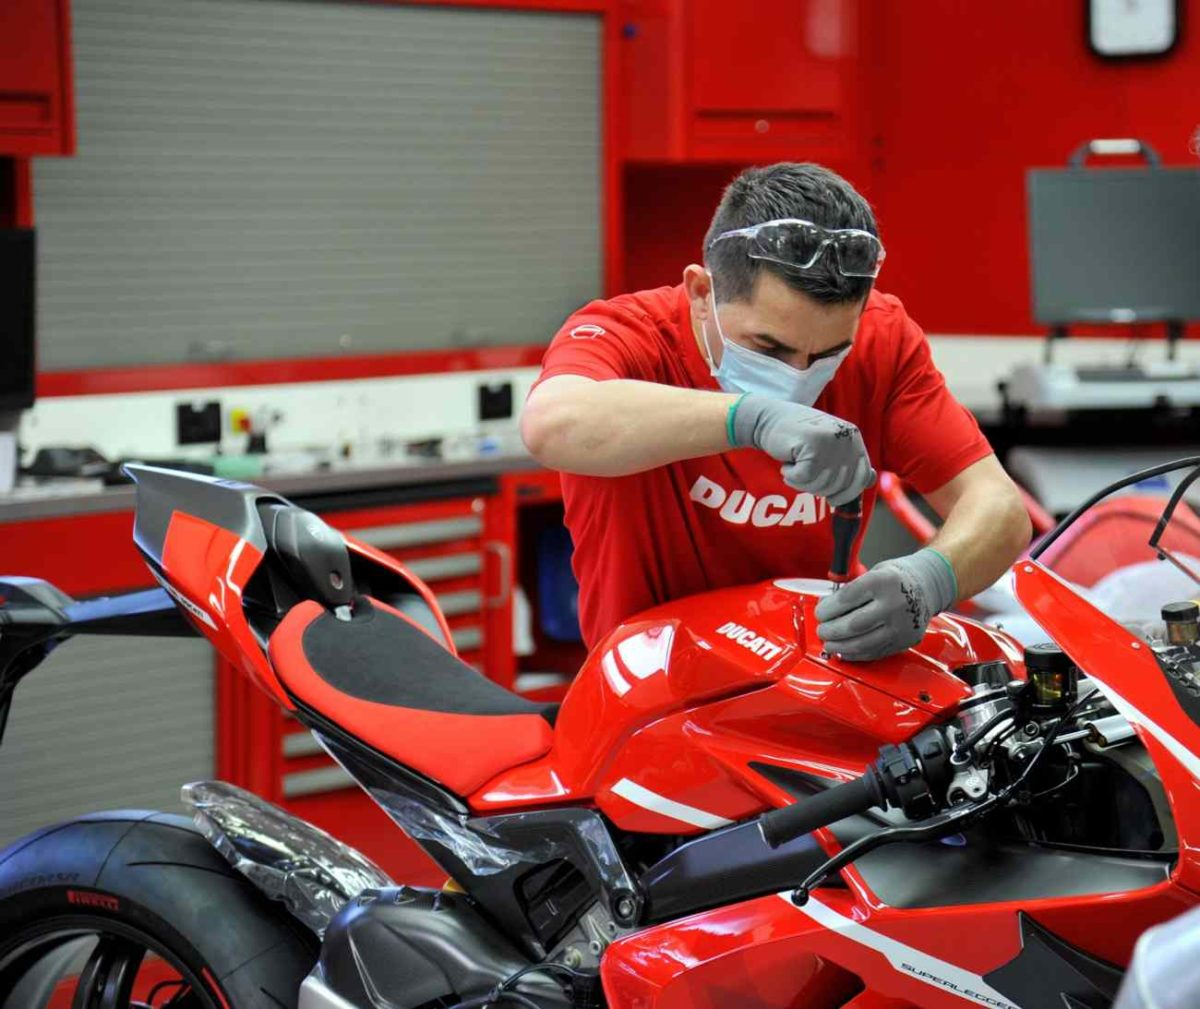 Ducati Superleggera V4 production